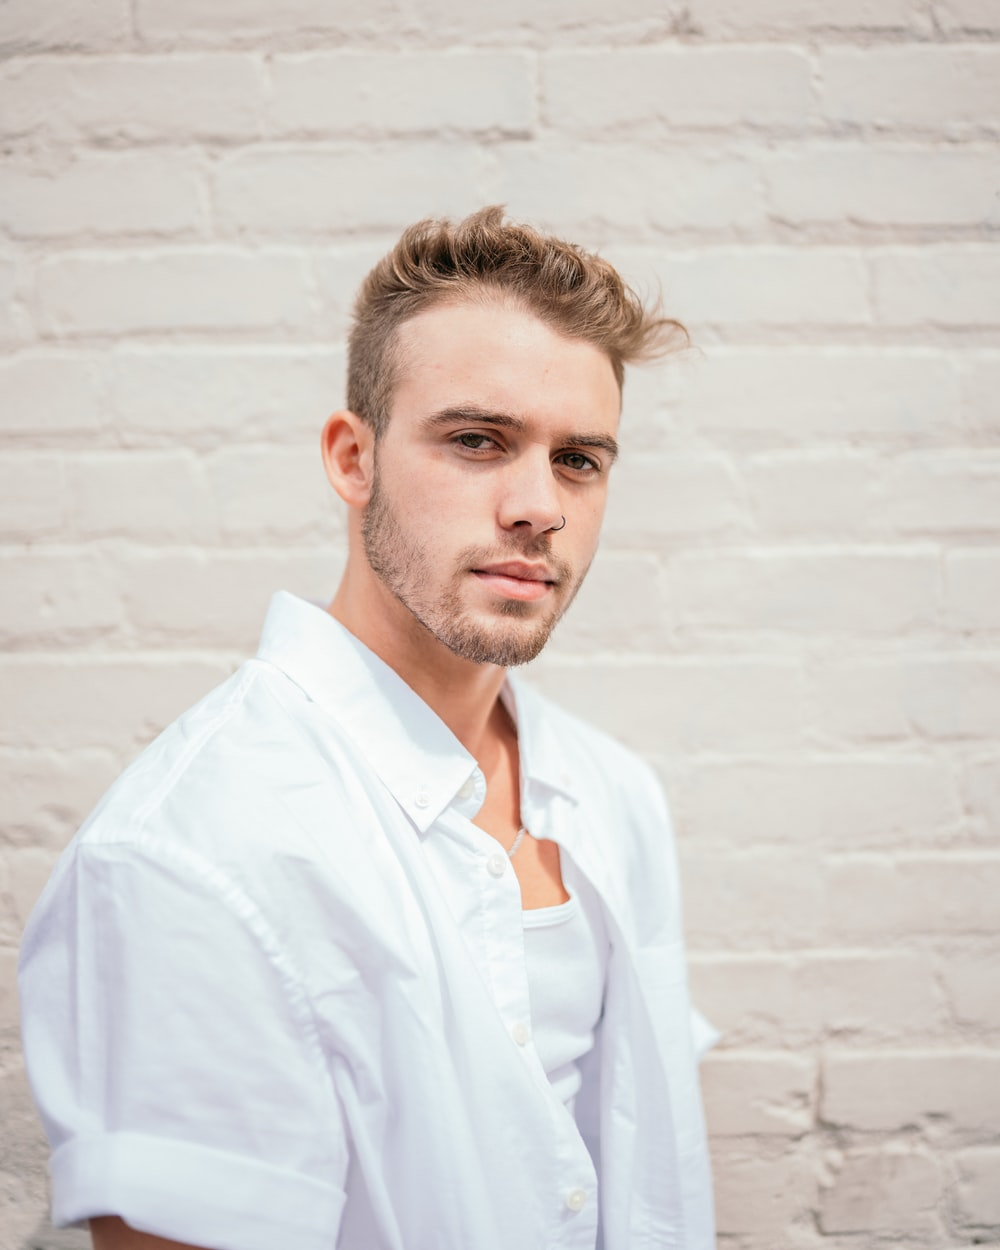 man in white button up shirt standing beside white wall